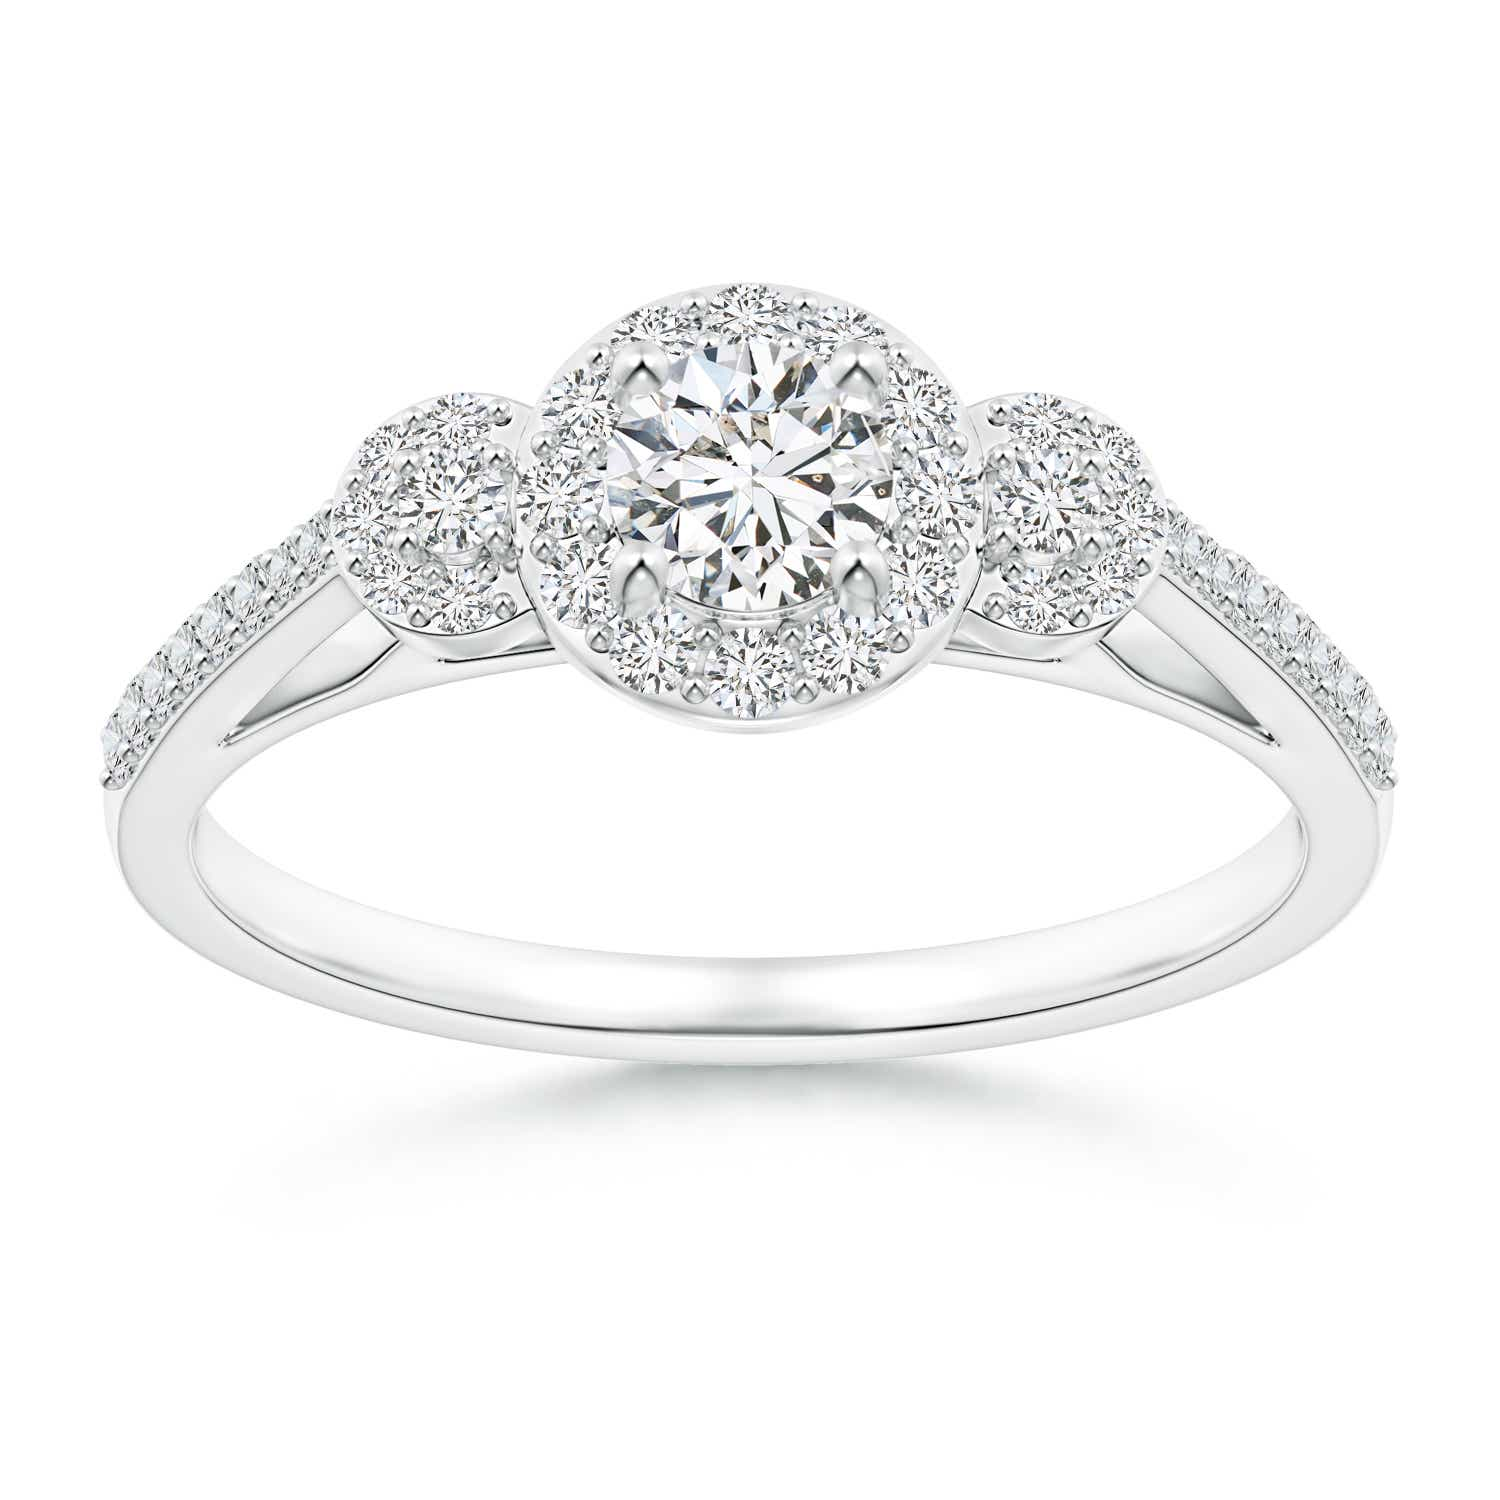 Three Stone Round Diamond Halo Ring with Prong Setting - Angara.com